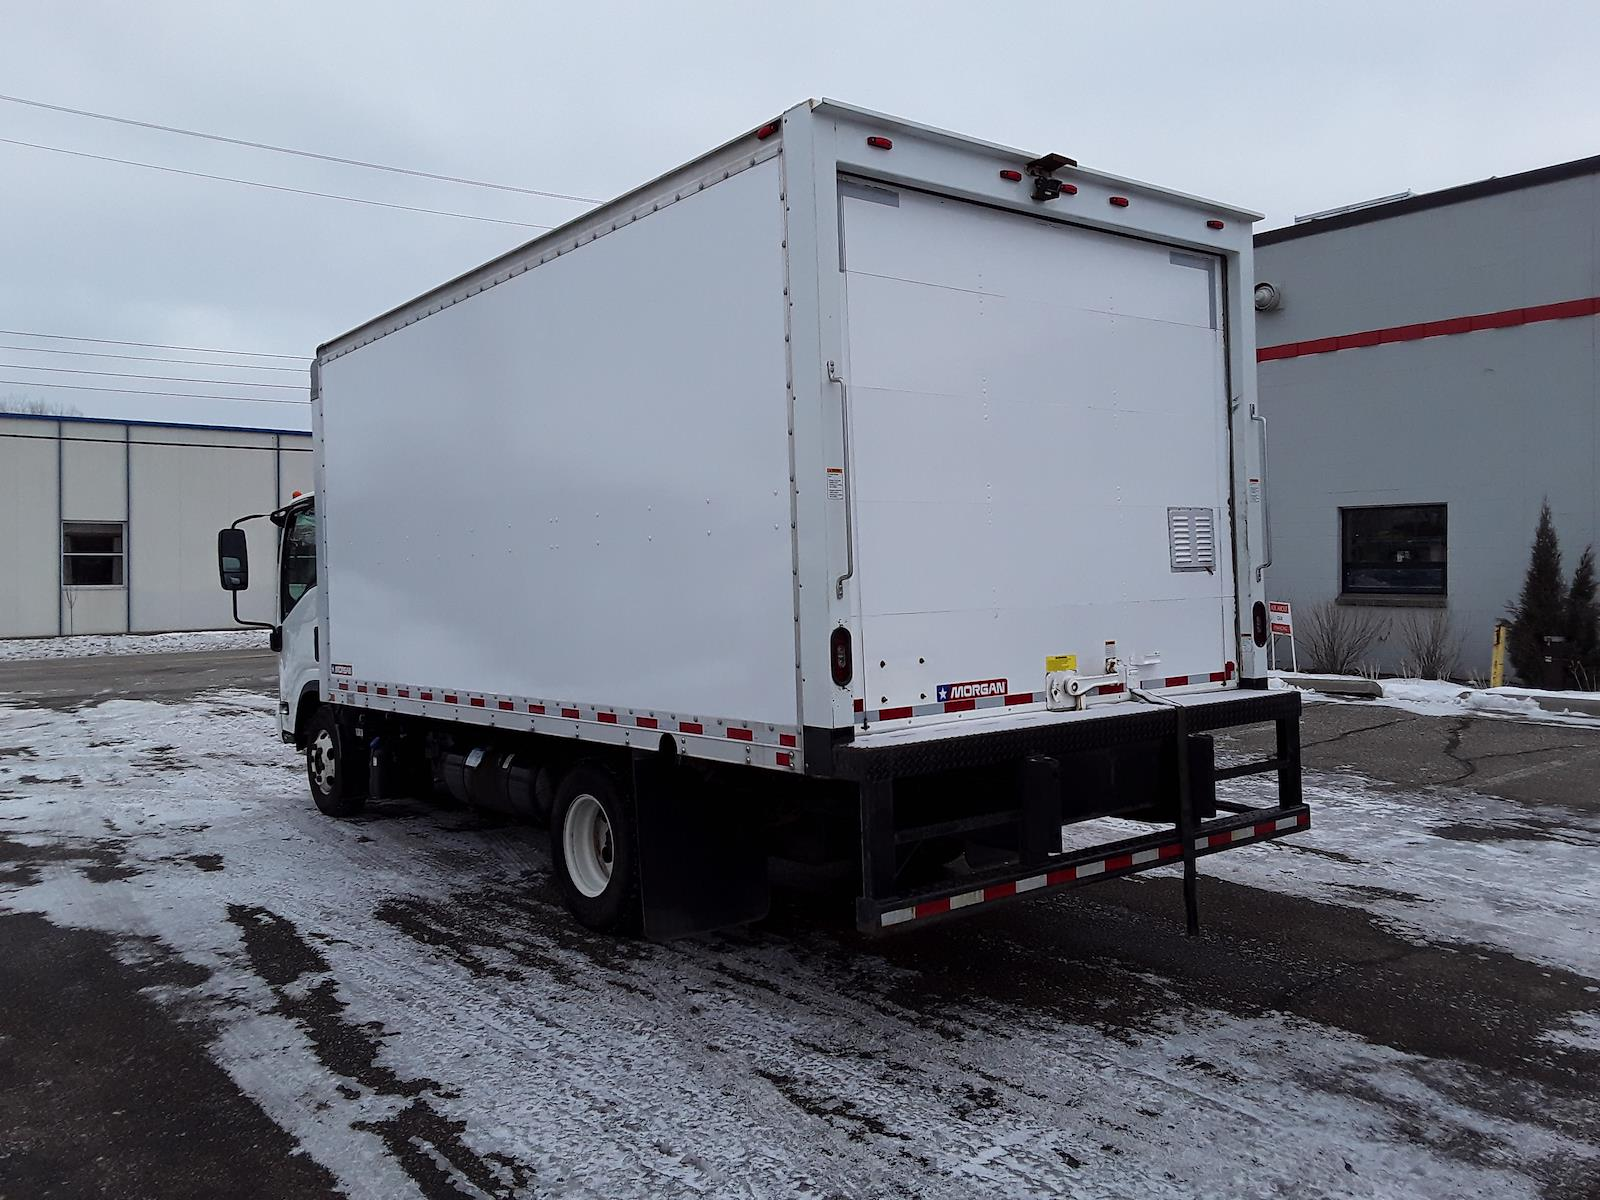 2016 Isuzu NPR Regular Cab 4x2, Dry Freight #683139 - photo 1